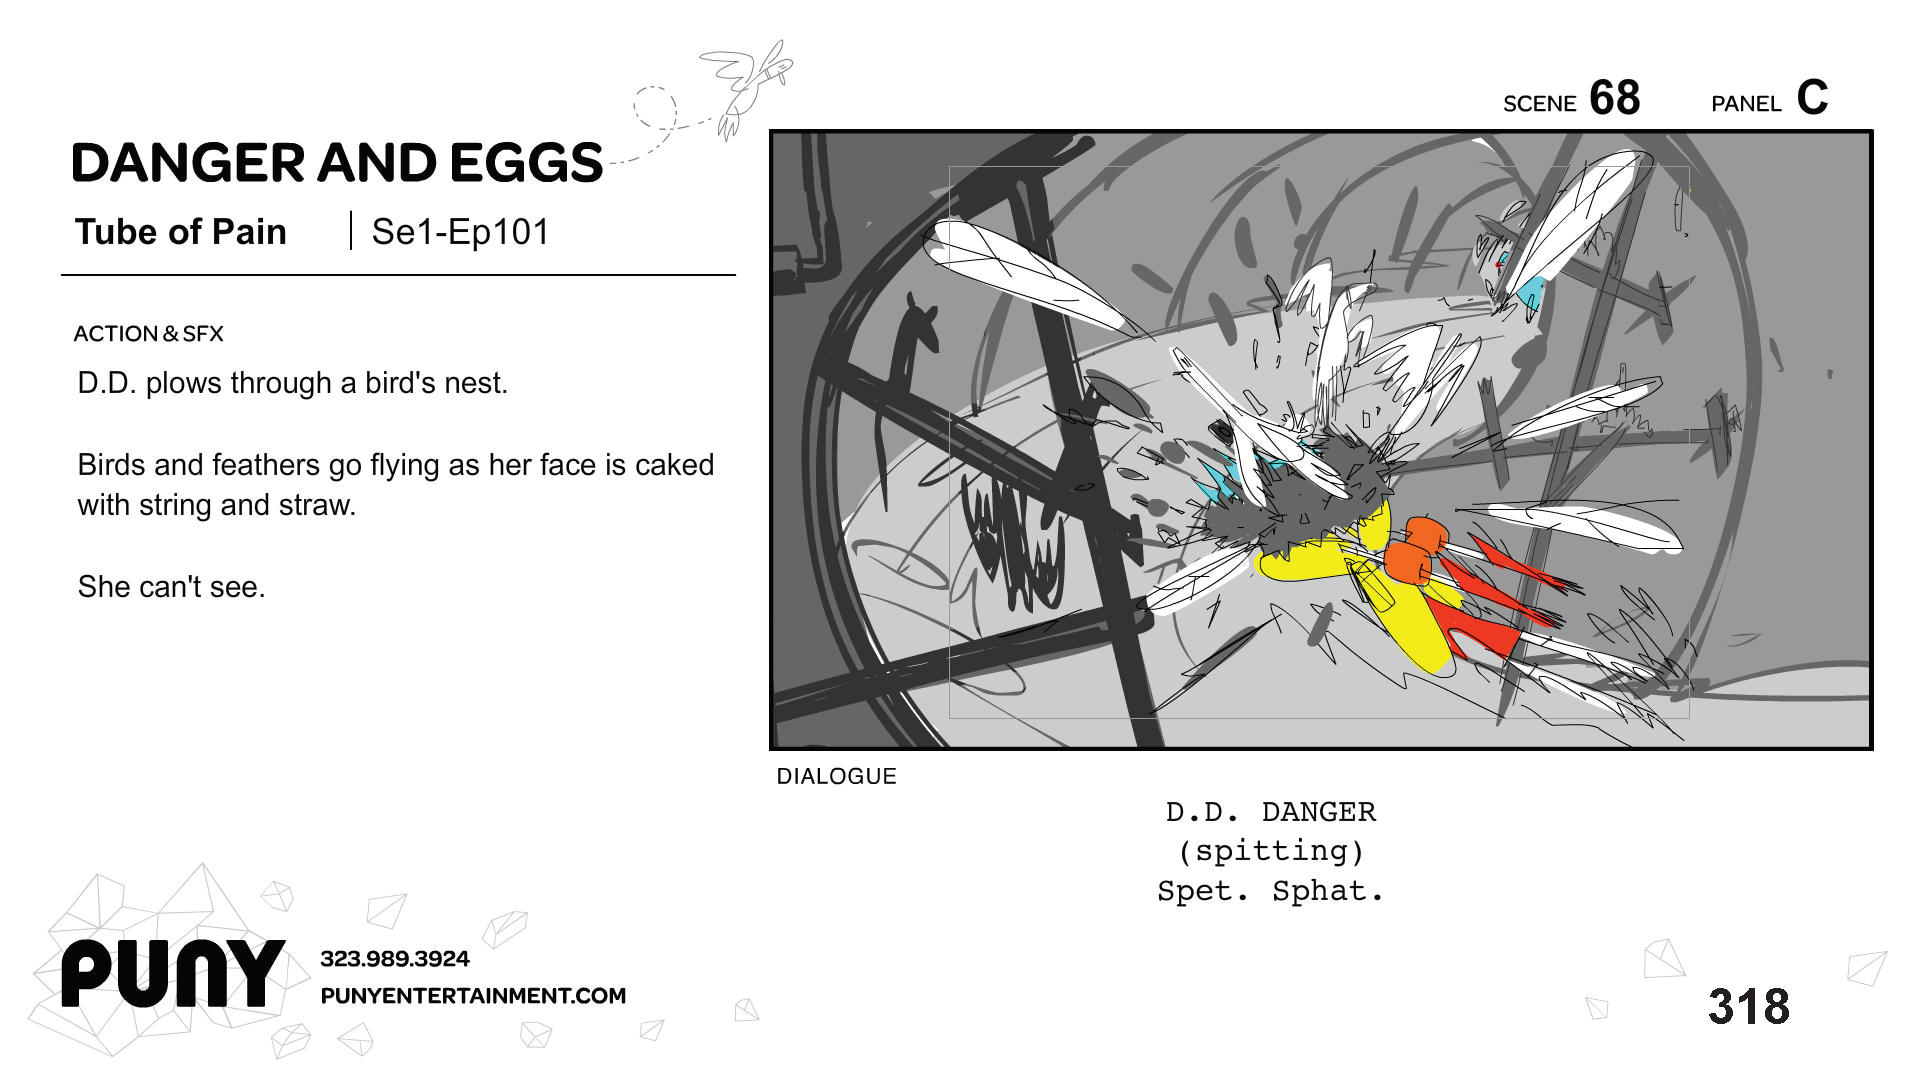 MikeOwens_STORYBOARDS_DangerAndEggs_Page_213.png